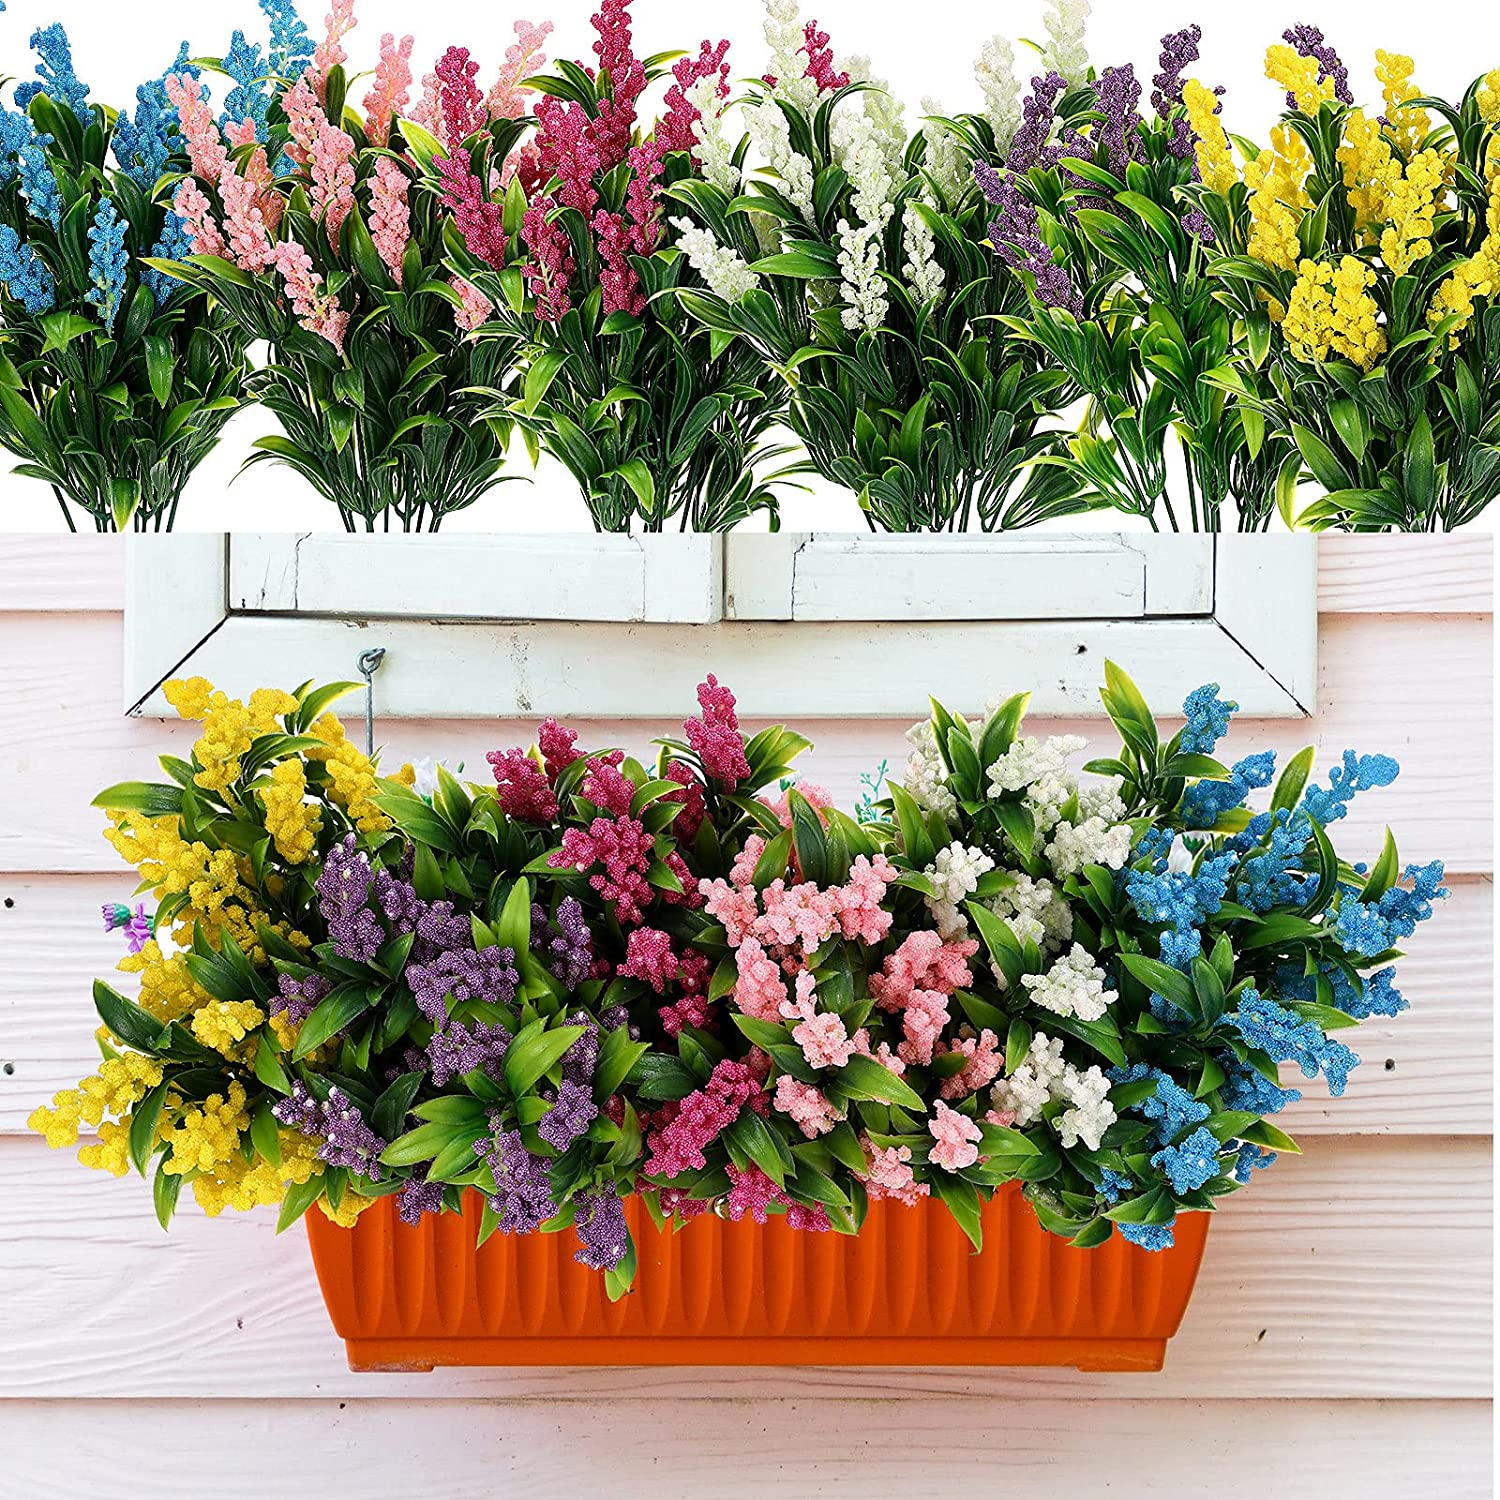 12 Bundles Artificial Flowers Plastic Faux Plants Faux Greenery Shrubs Outdoor UV Resistant Fake Flowers for Indoor and Outside Garden Porch Window Box DIY Decoration, 6 Mixed Colors